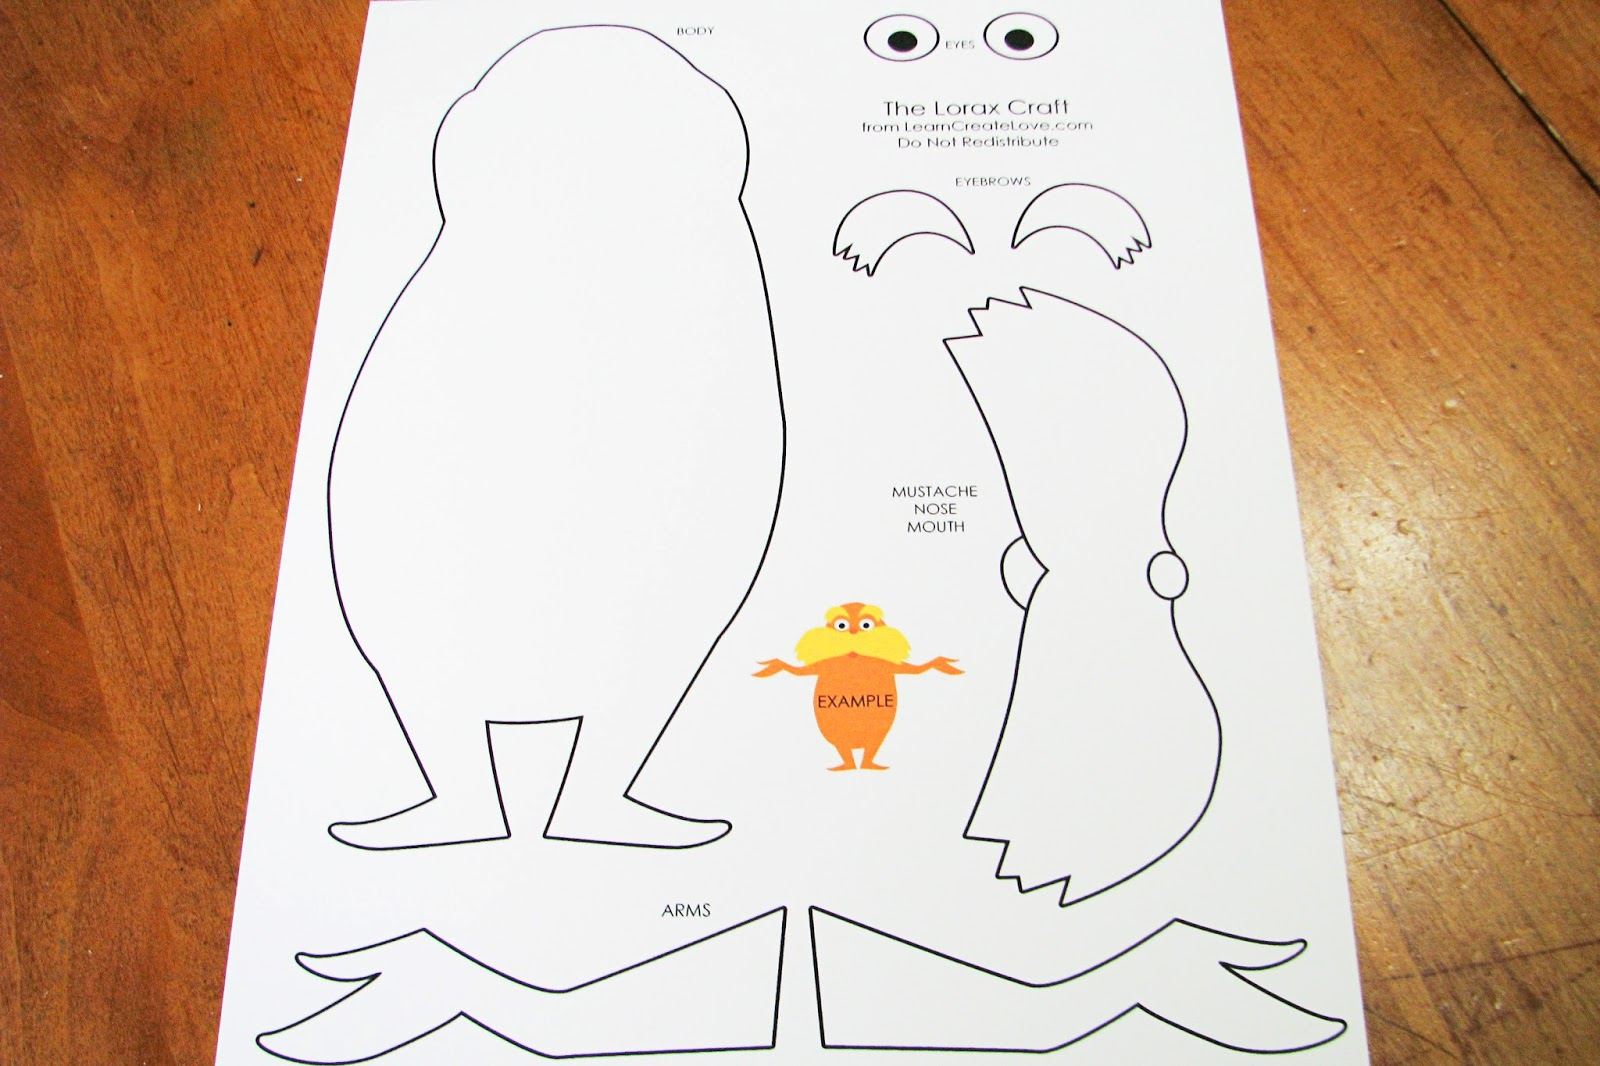 photograph relating to Lorax Template Printable identify 20+ Dr Seuss Craft Templates Shots and Recommendations upon Weric